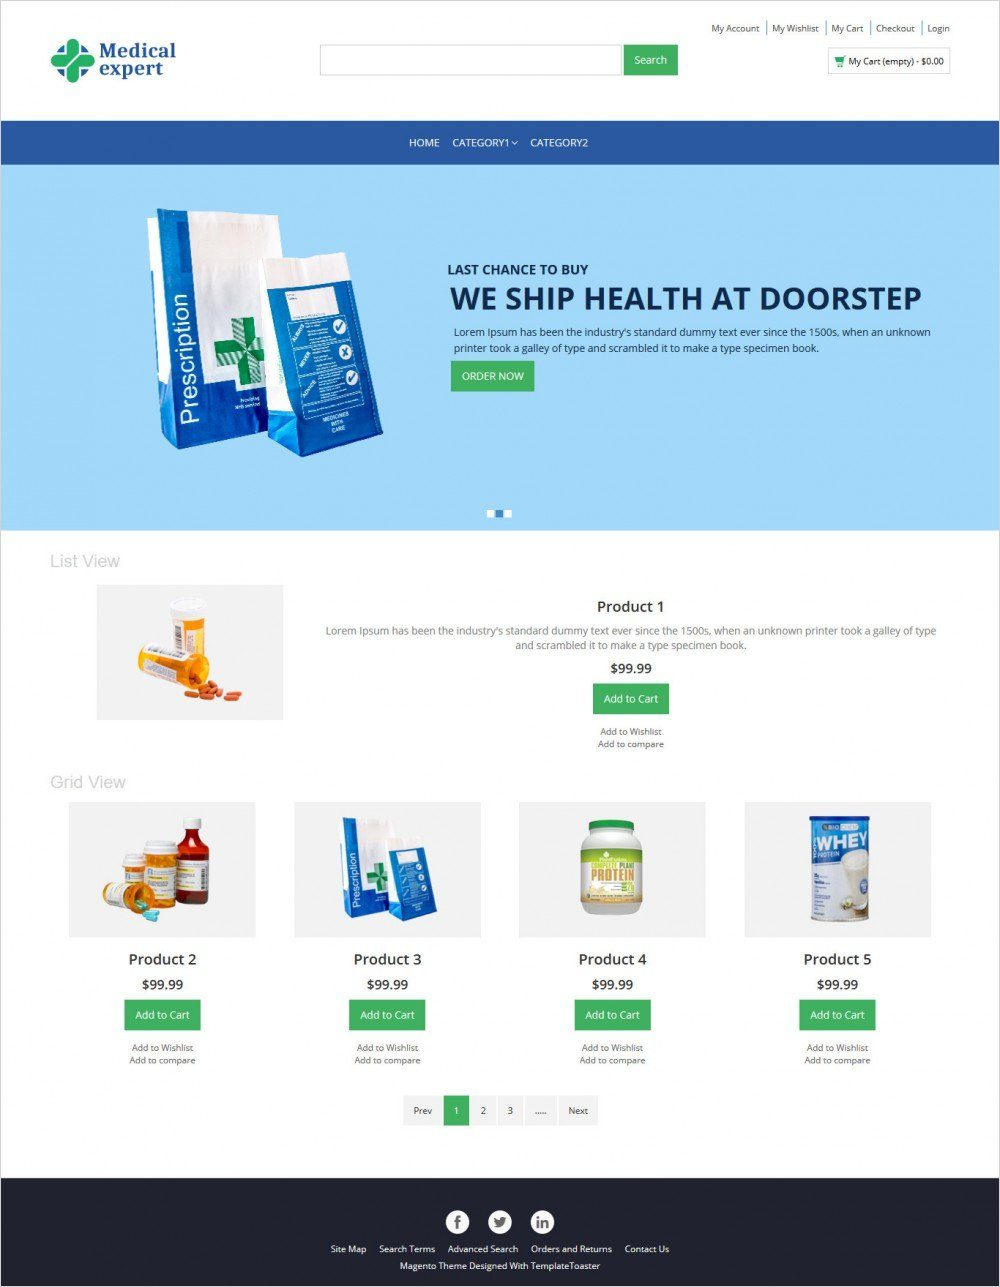 medical-expert-online medical store magento responsive theme